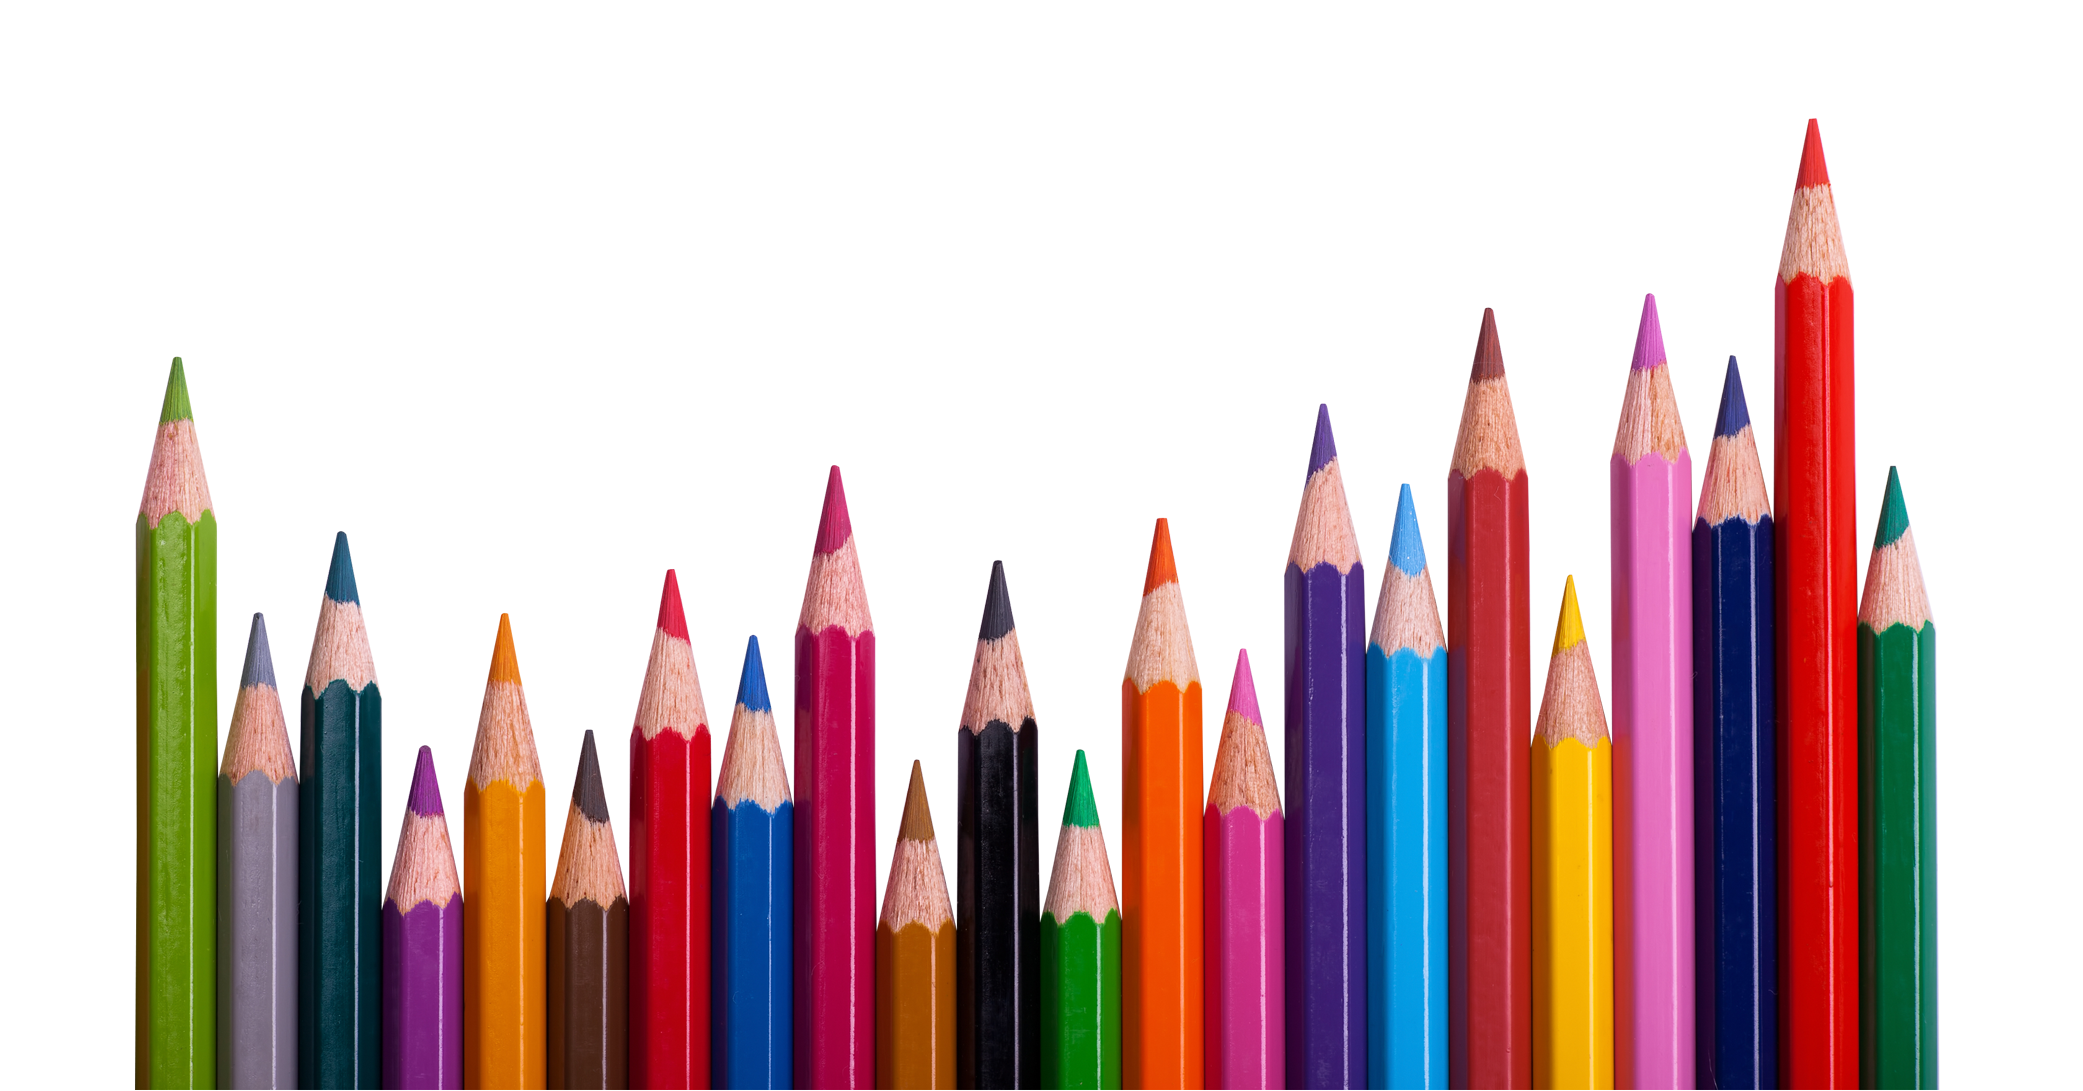 Color pencil png. Transparent image mart